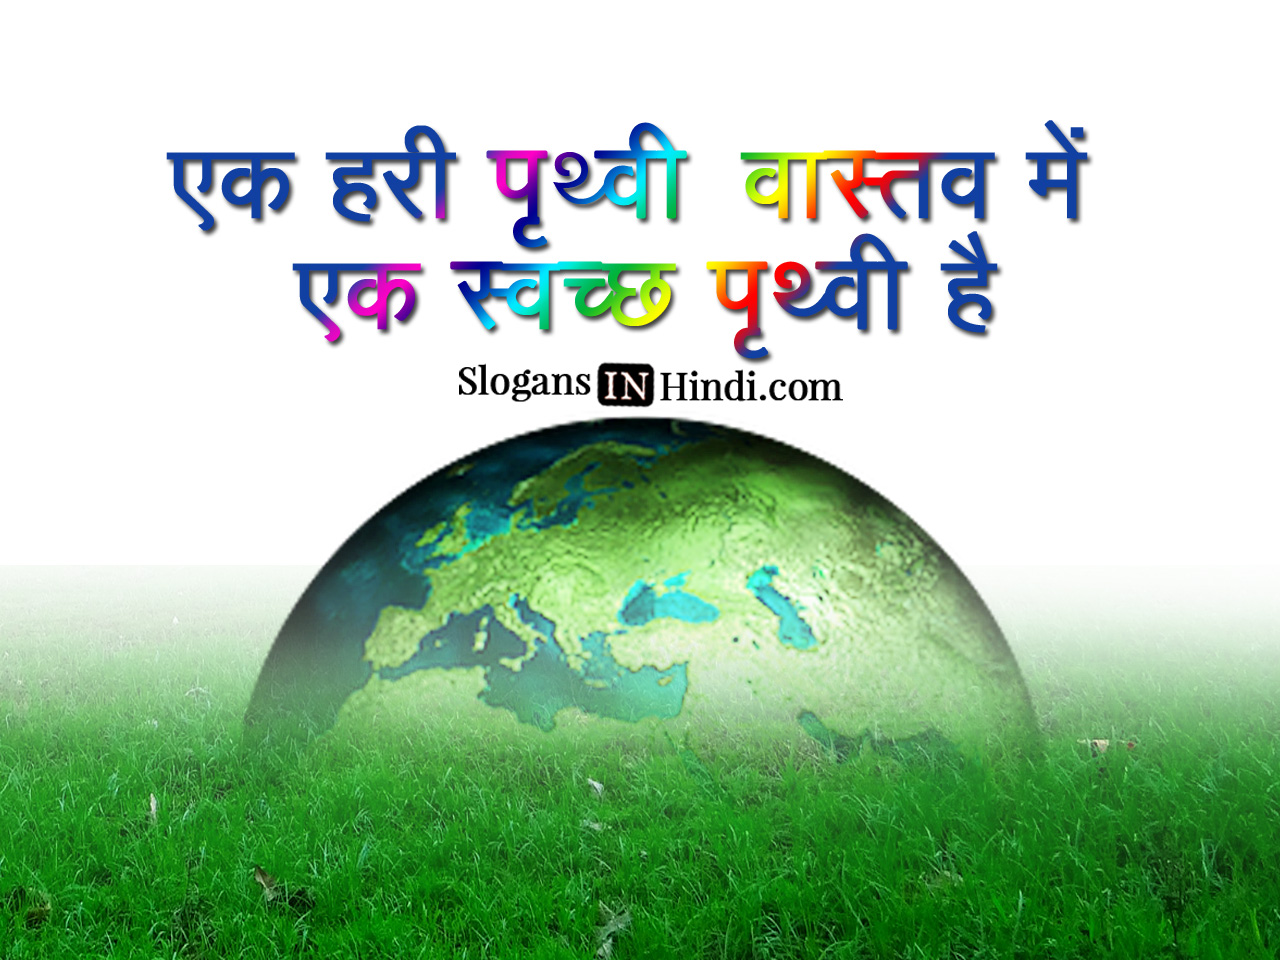 slogan on environment in hindi pdf